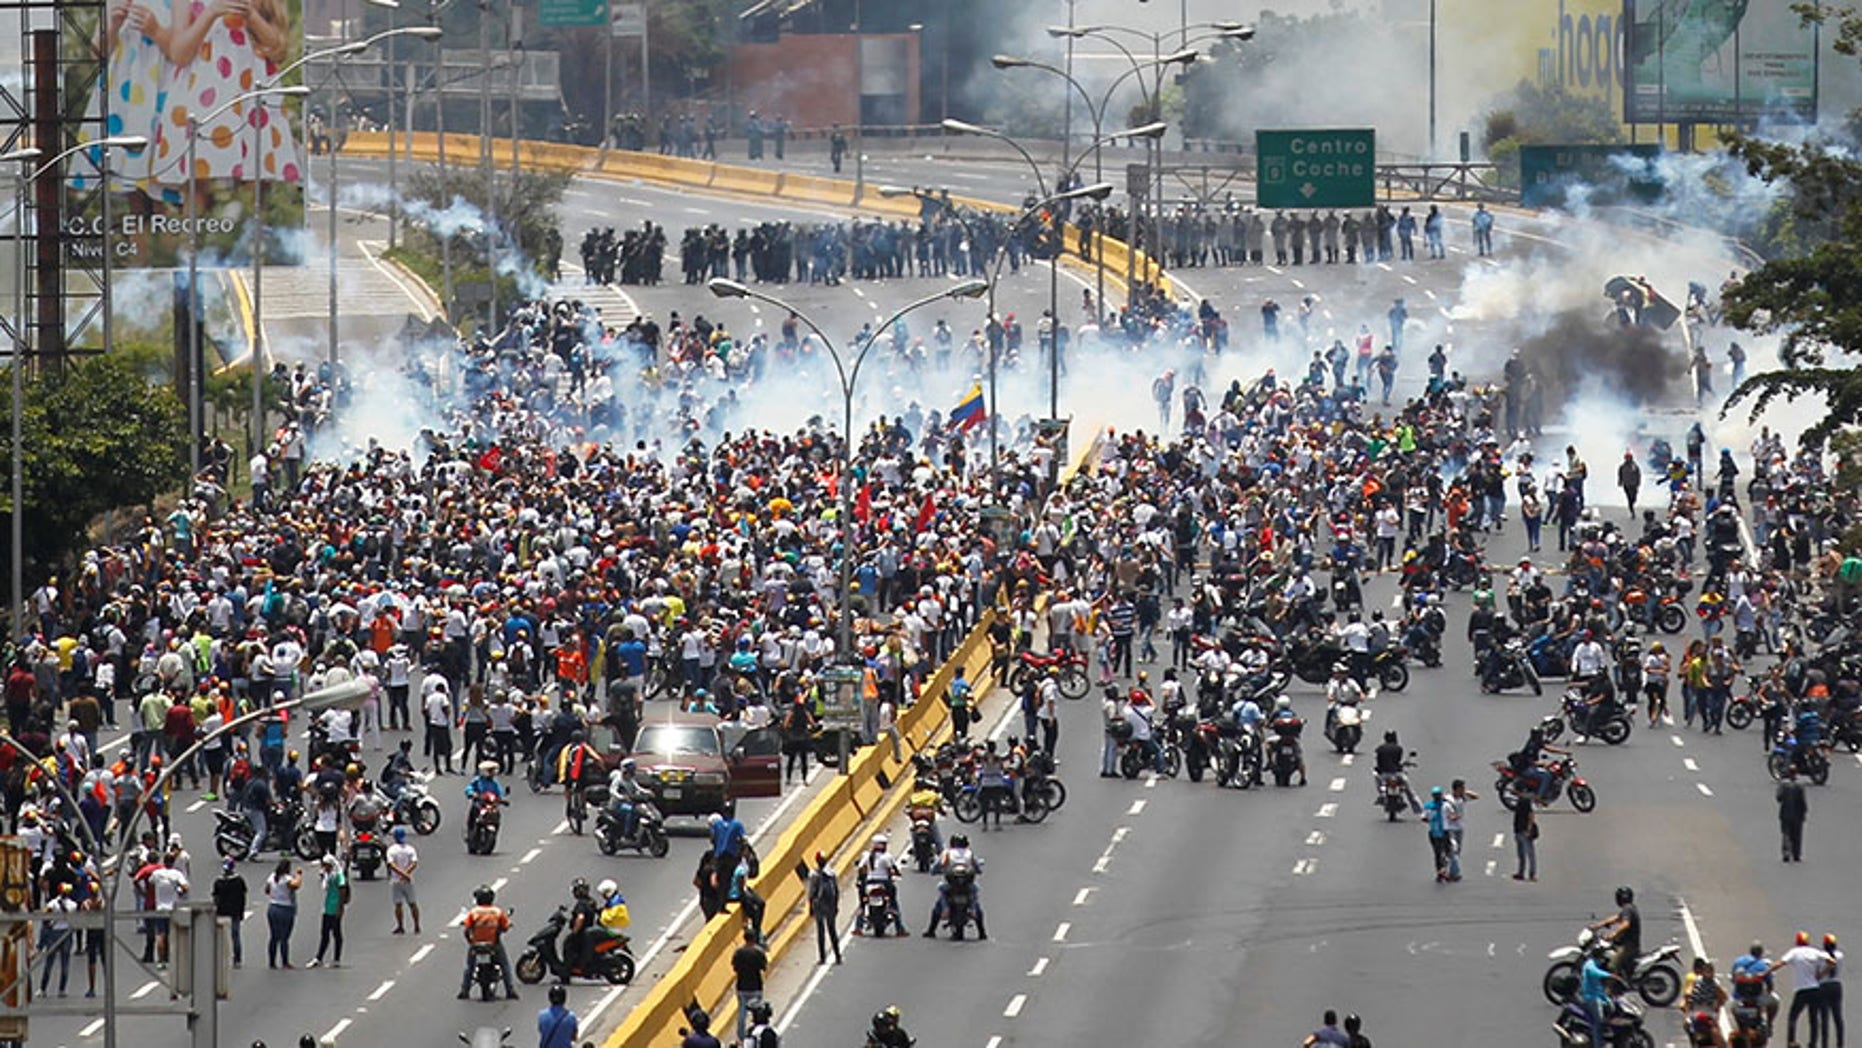 Demonstrators clash with riot police while ralling against Venezuela's President Nicolas Maduro's government in Caracas, Venezuela April 10, 2017.